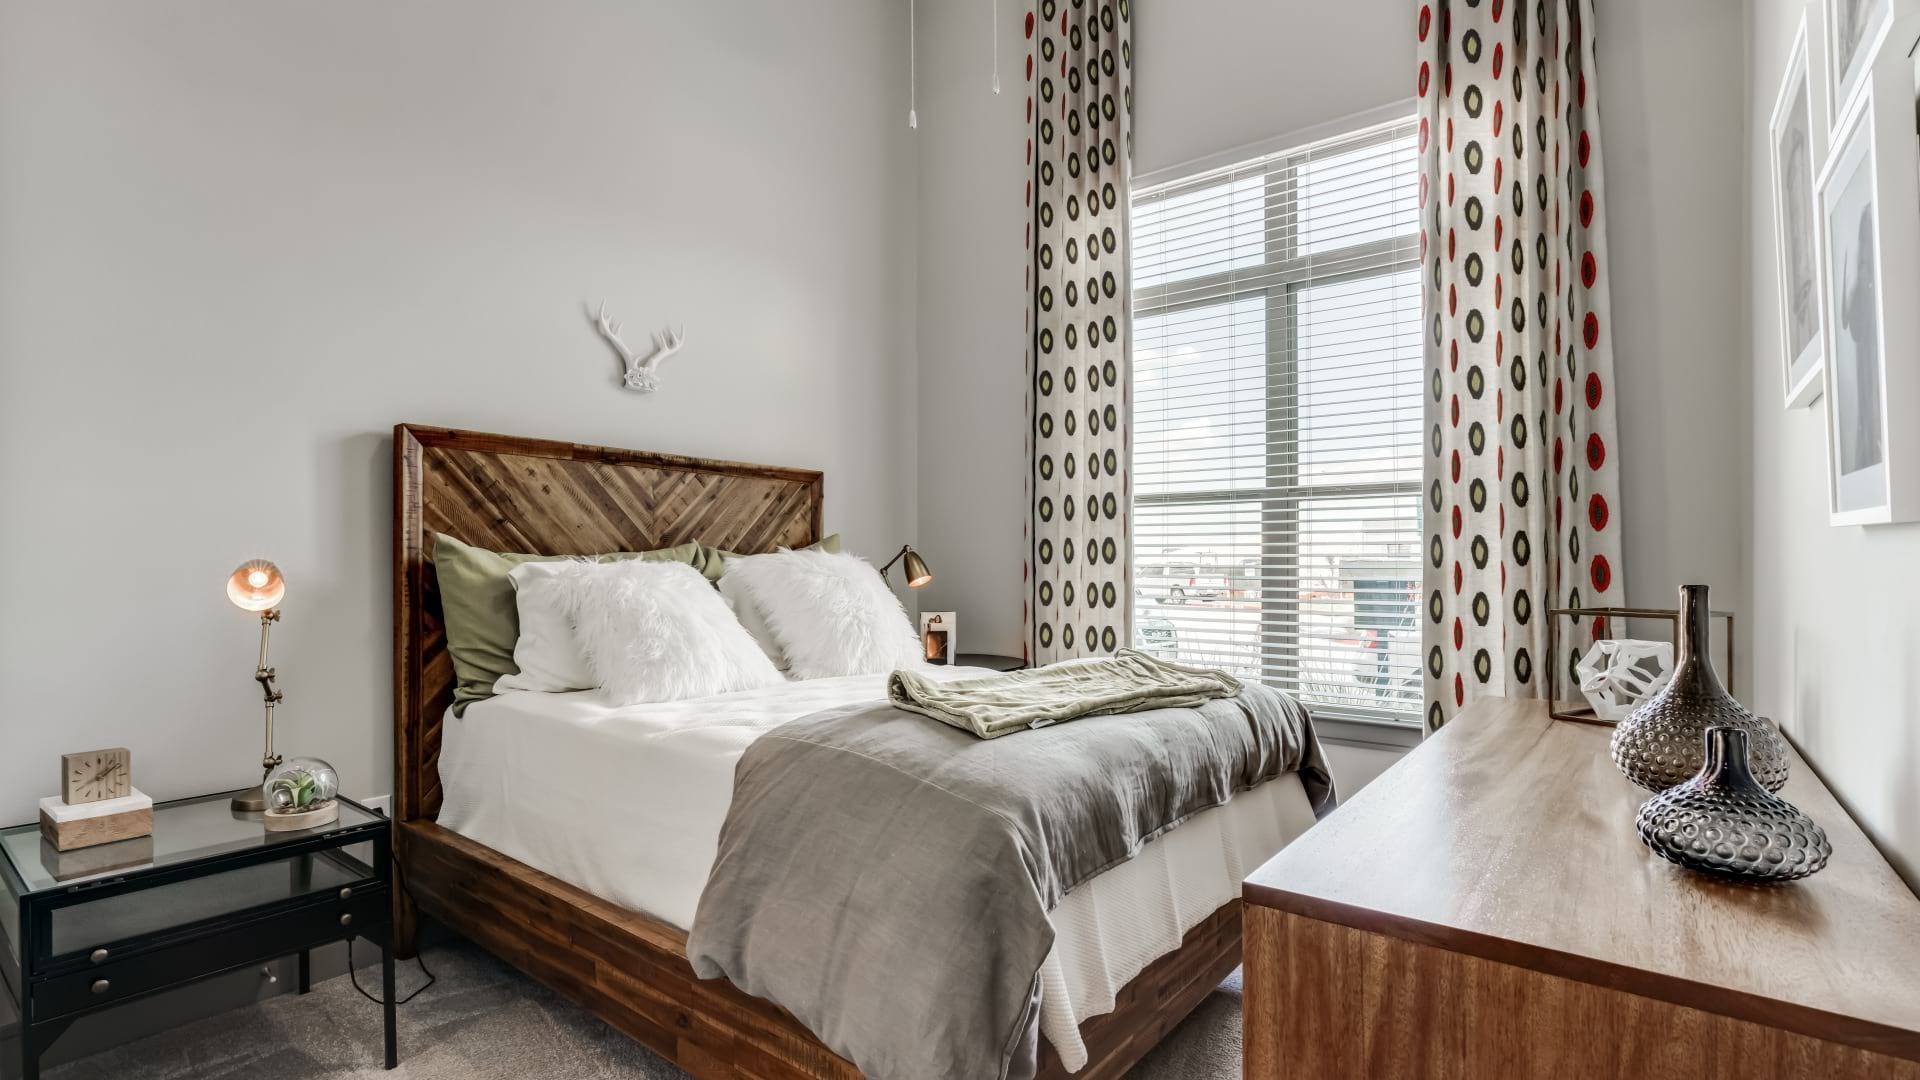 A modern apartment bedroom with cozy home decor at Circa Verus Frisco